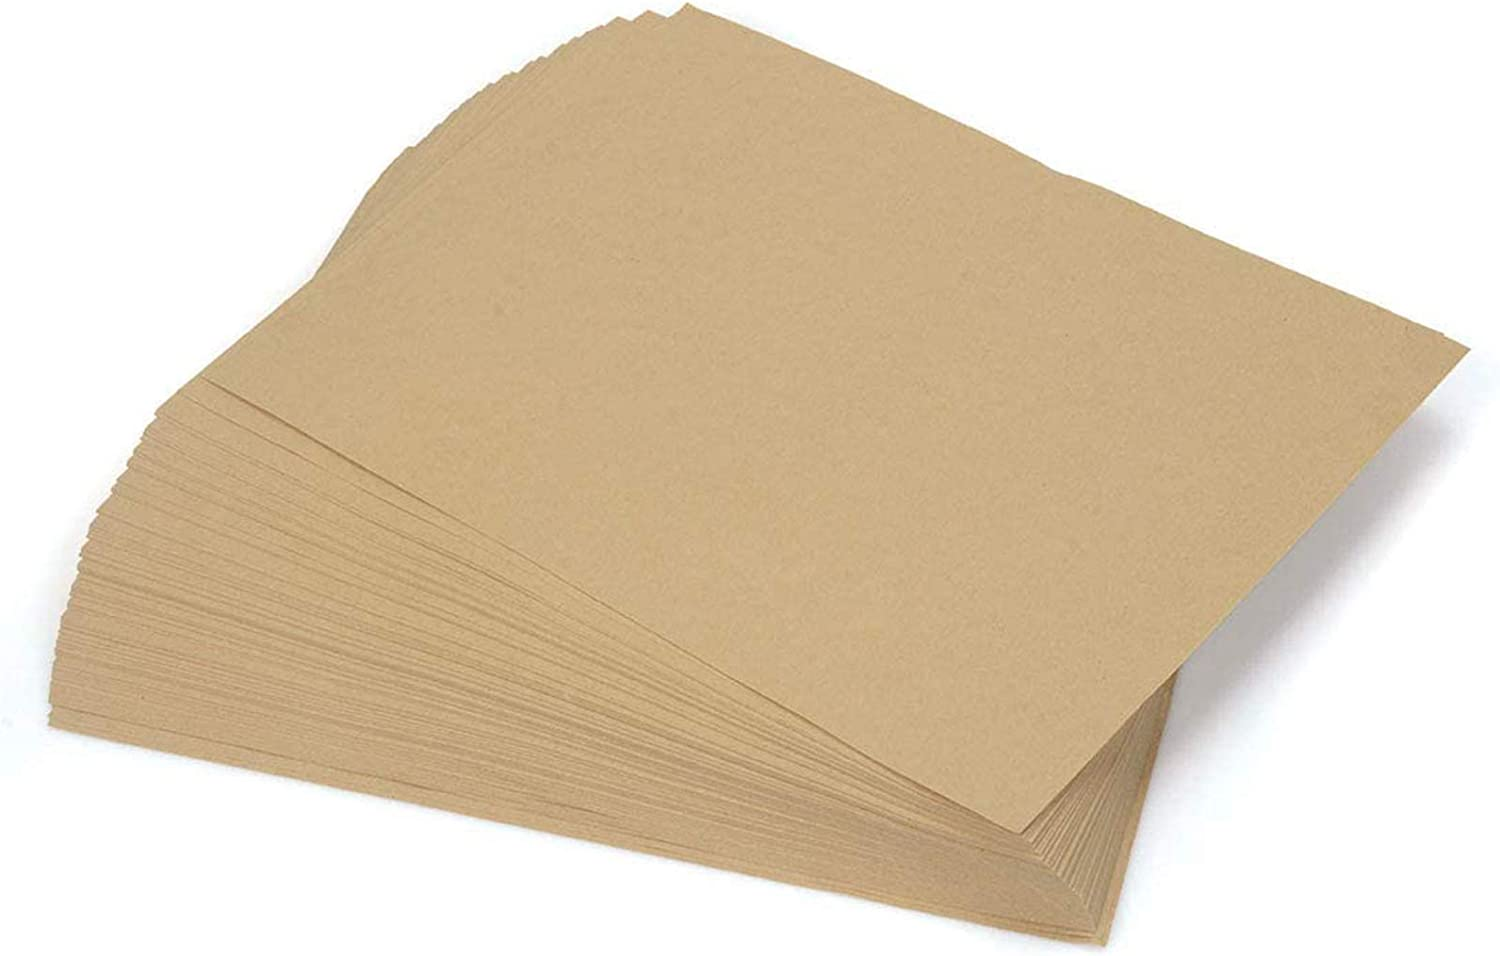 Brown Kraft Paper, 170 Pcs Kraft Paper Sheet, Letter Sized Brown Stationery Paper for Art, Crafts and Office Use, 8.5 X11 Inches